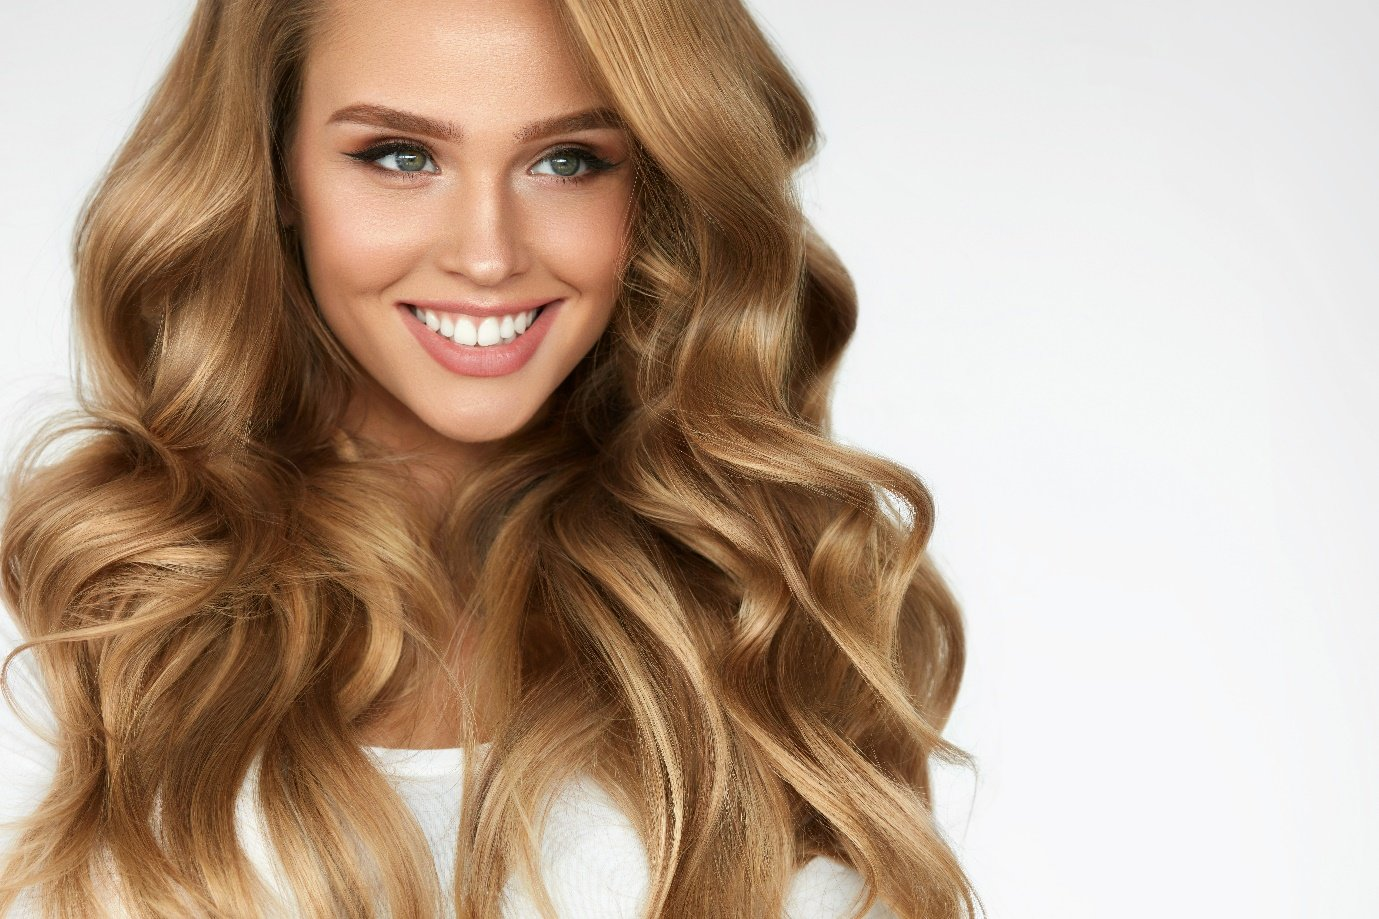 A picture containing clothing, person, smiling, hairpiece  Description automatically generated